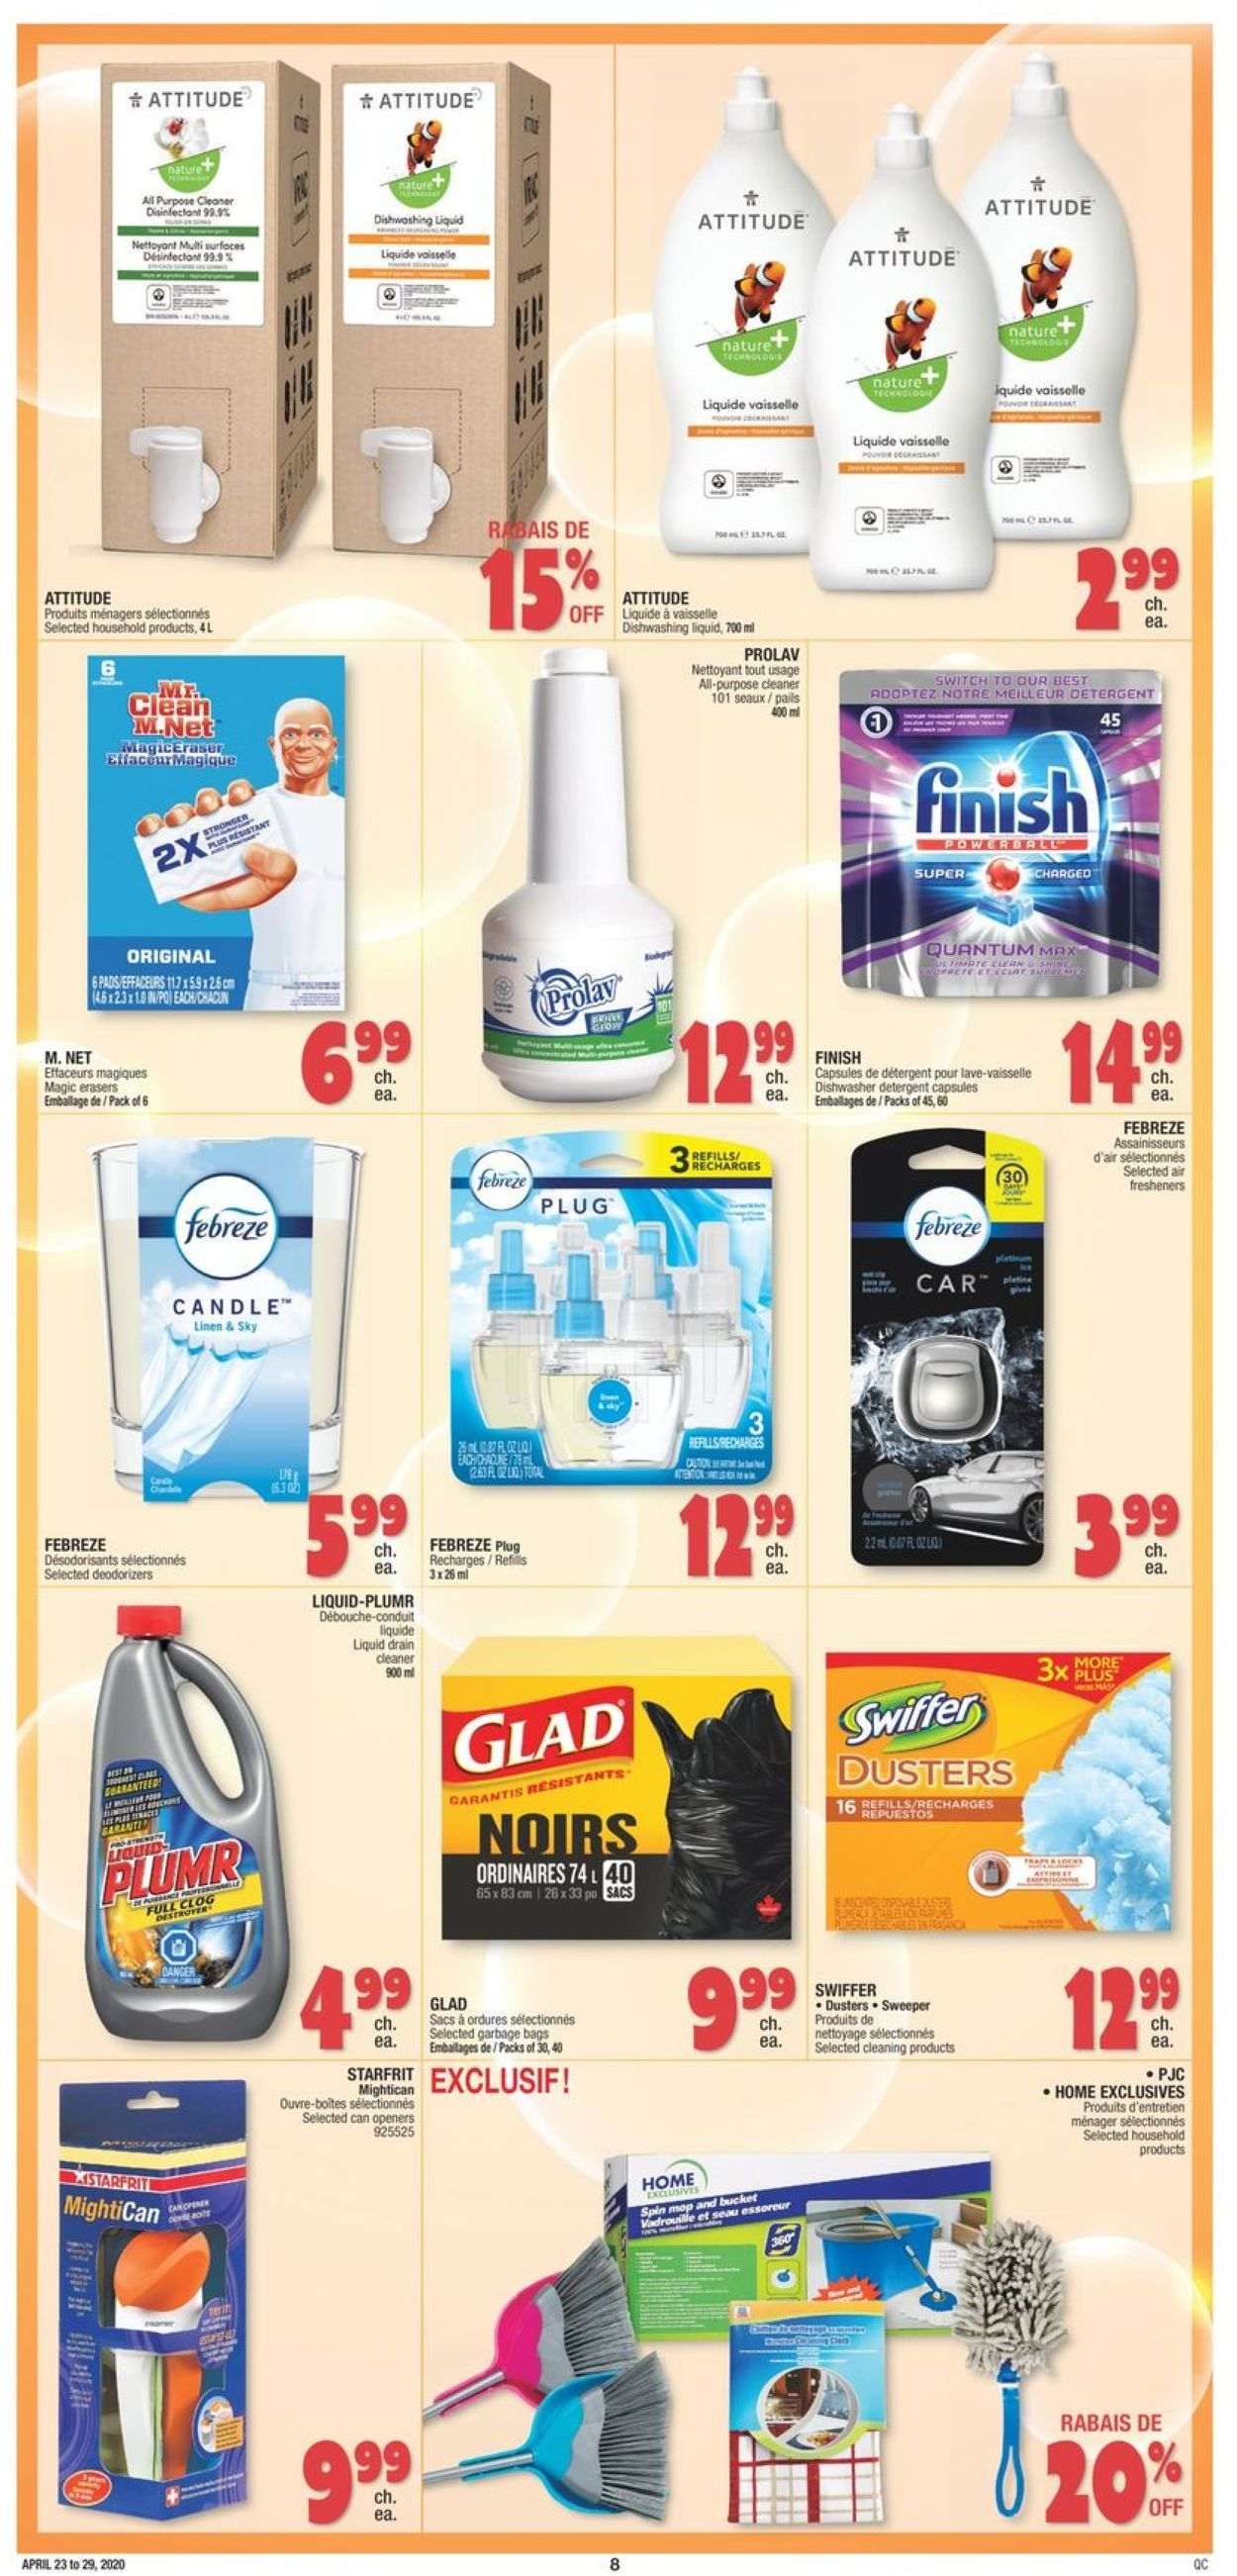 Jean Coutu Flyer - 04/23-04/29/2020 (Page 8)